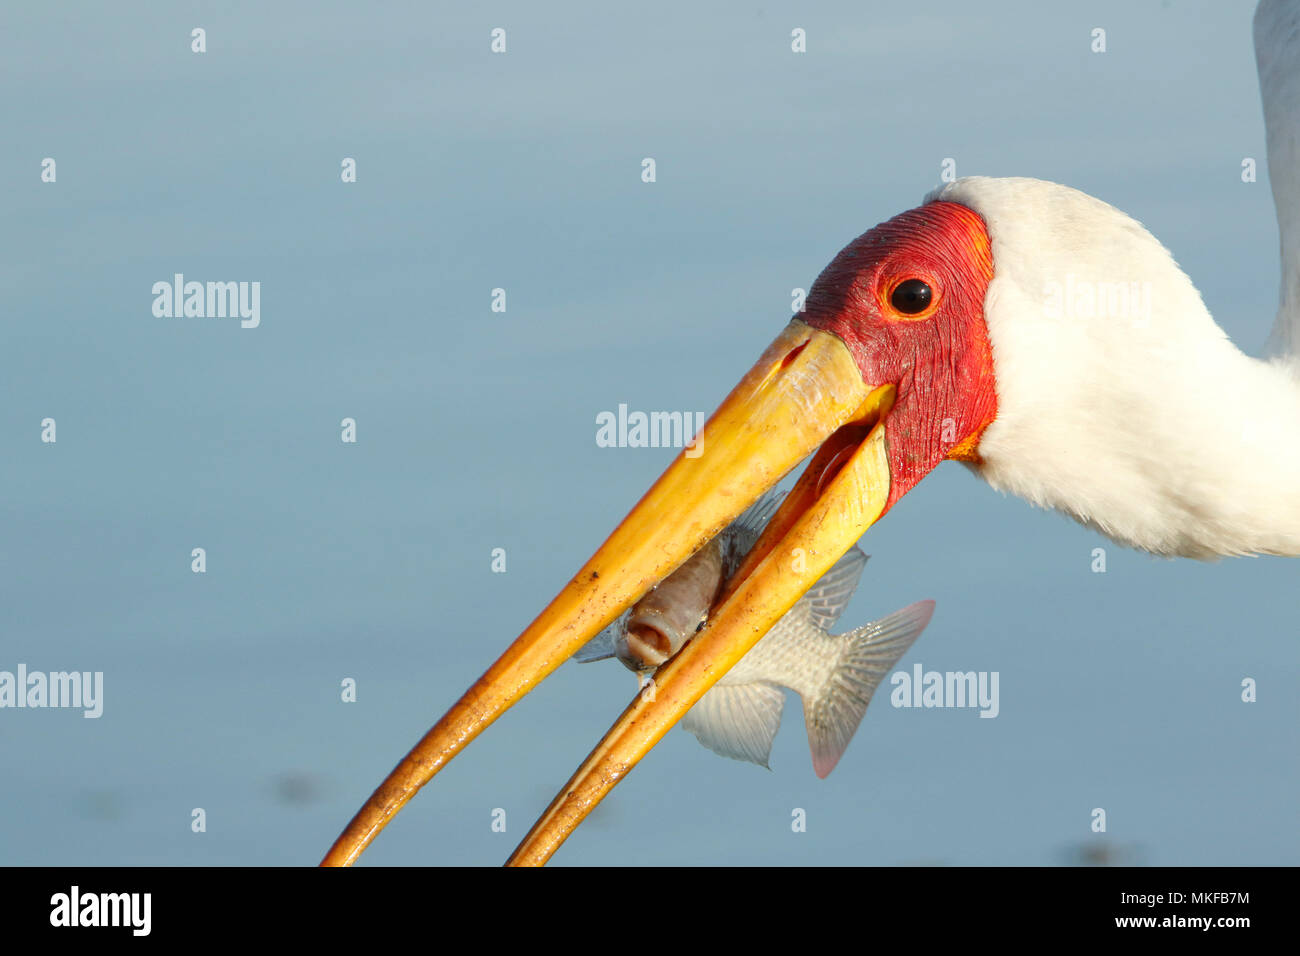 Yellow-billed Stork (Mycteria ibis) having caught a fish, Kruger NP, South Africa - Stock Image